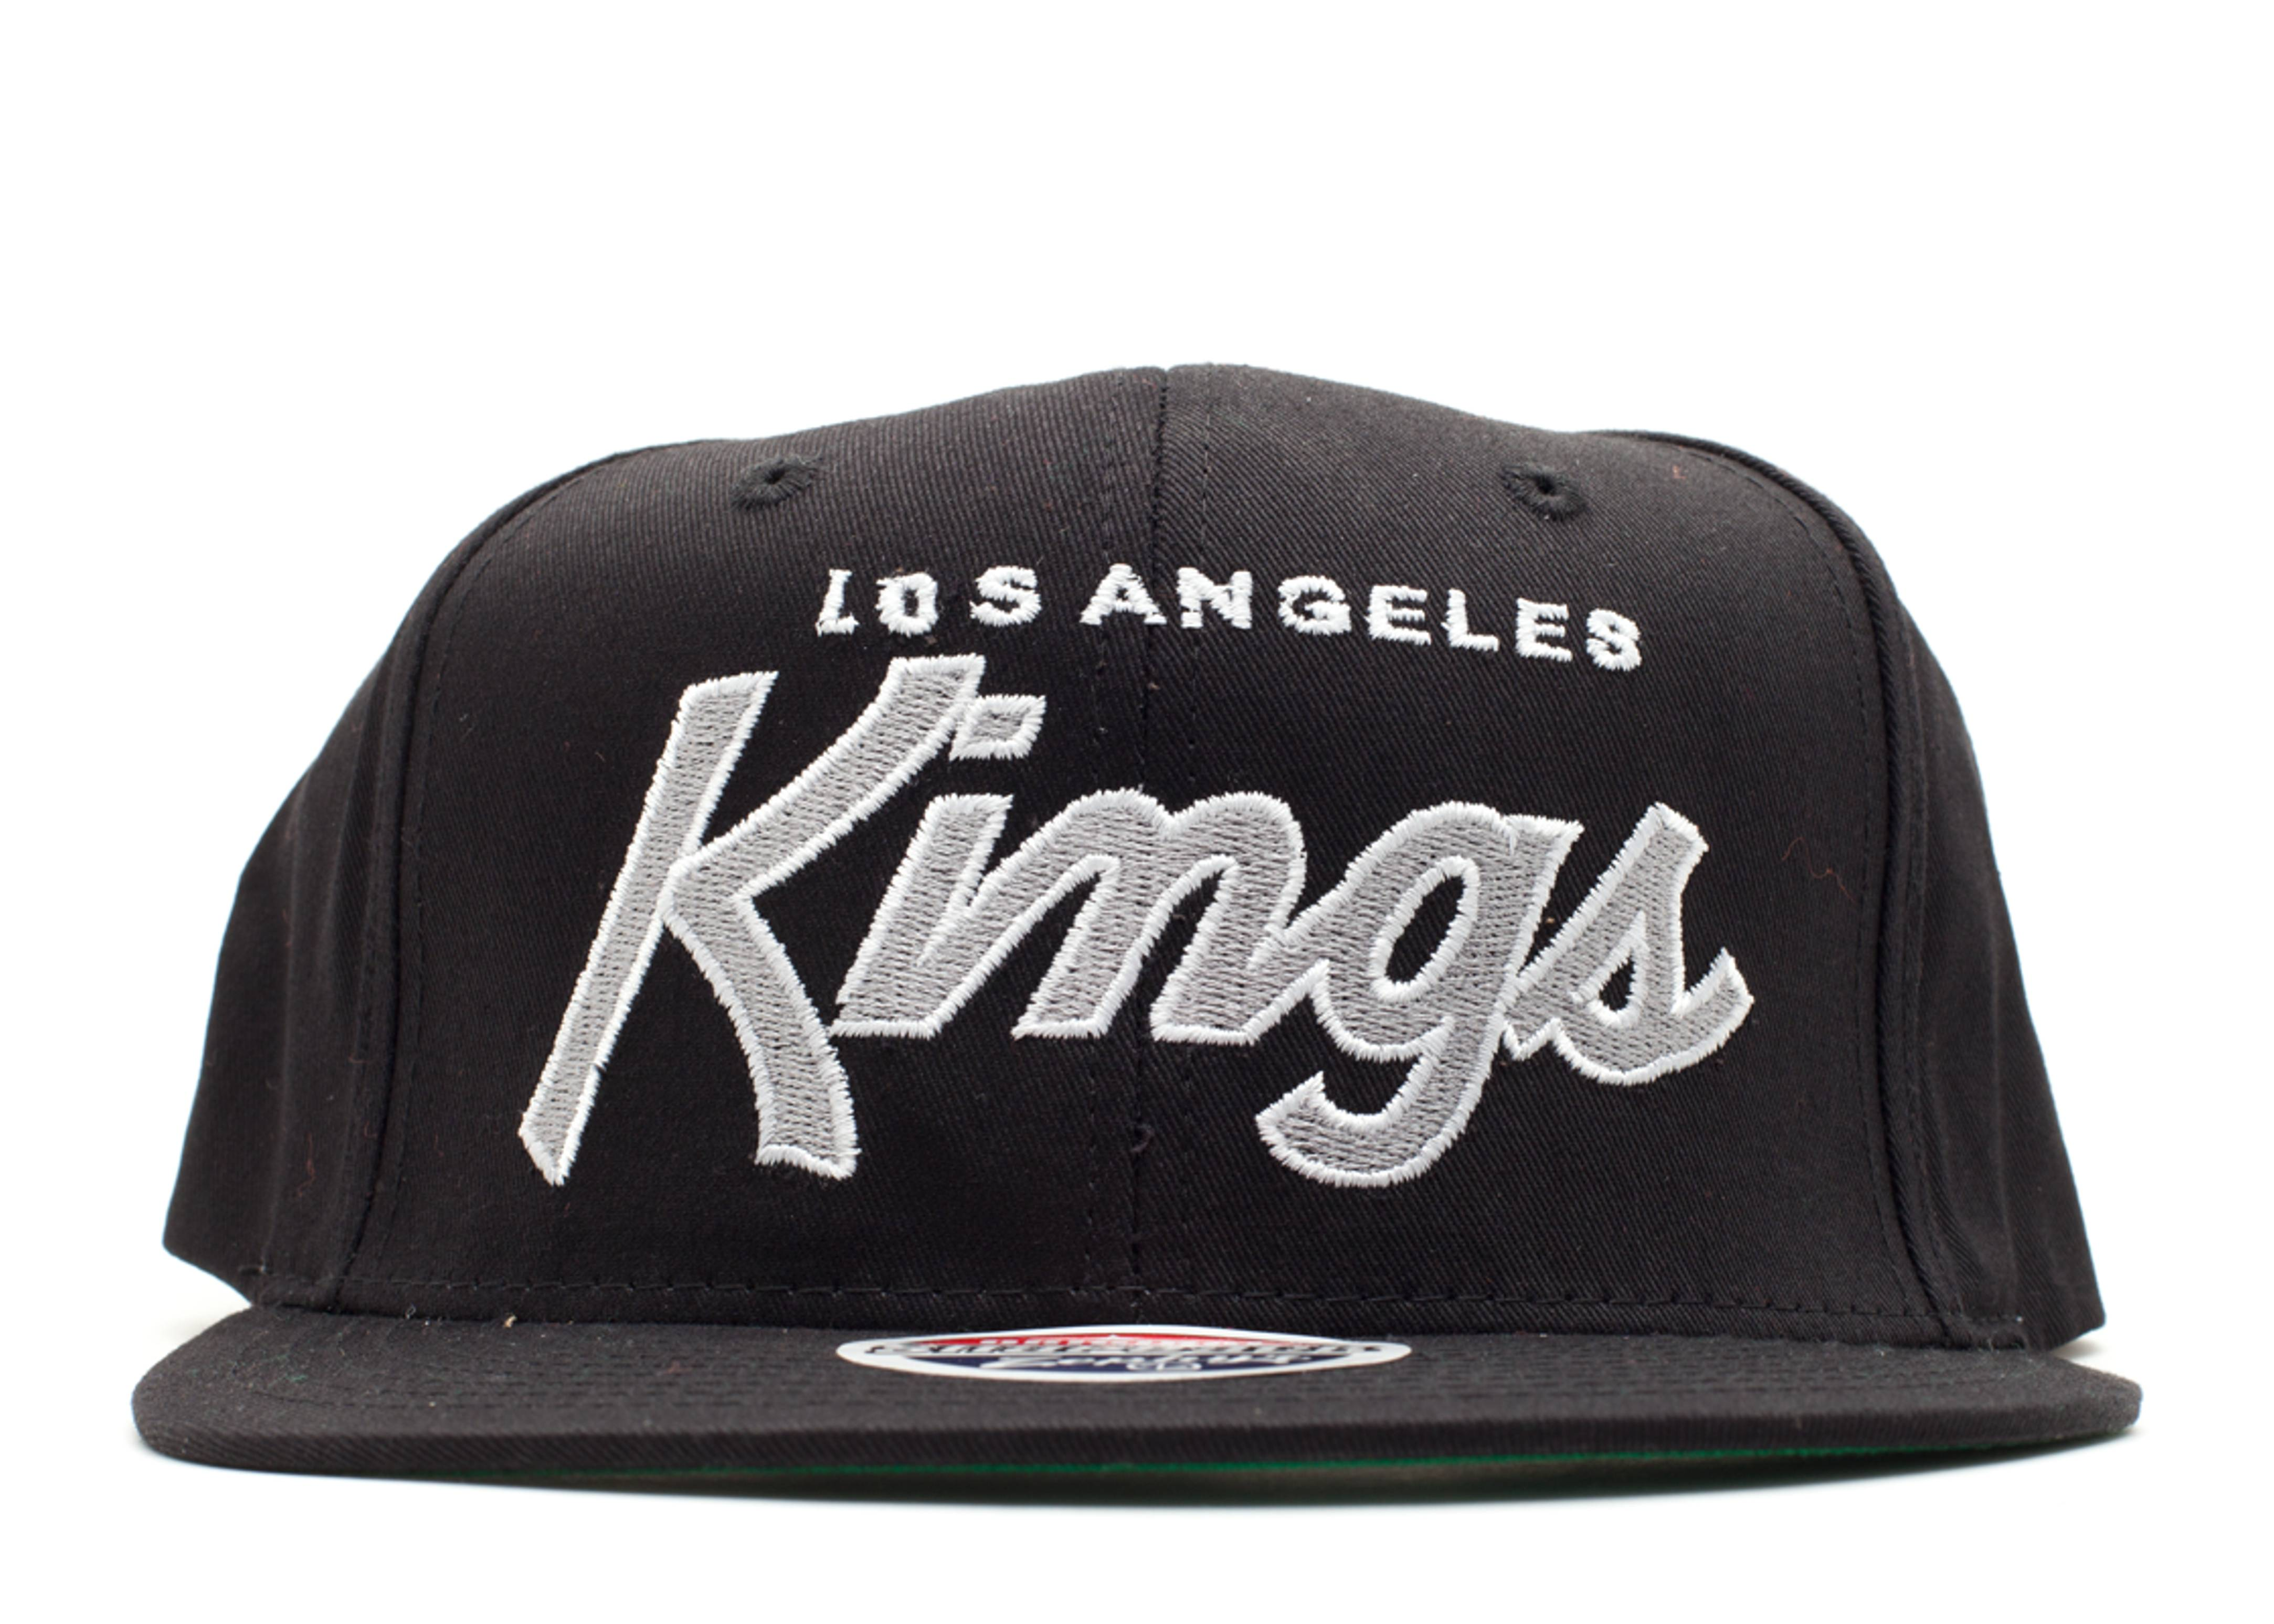 promo code 12cdc cc14d Los Angeles Kings Snap-back - Vintage - 7171255 - black ...